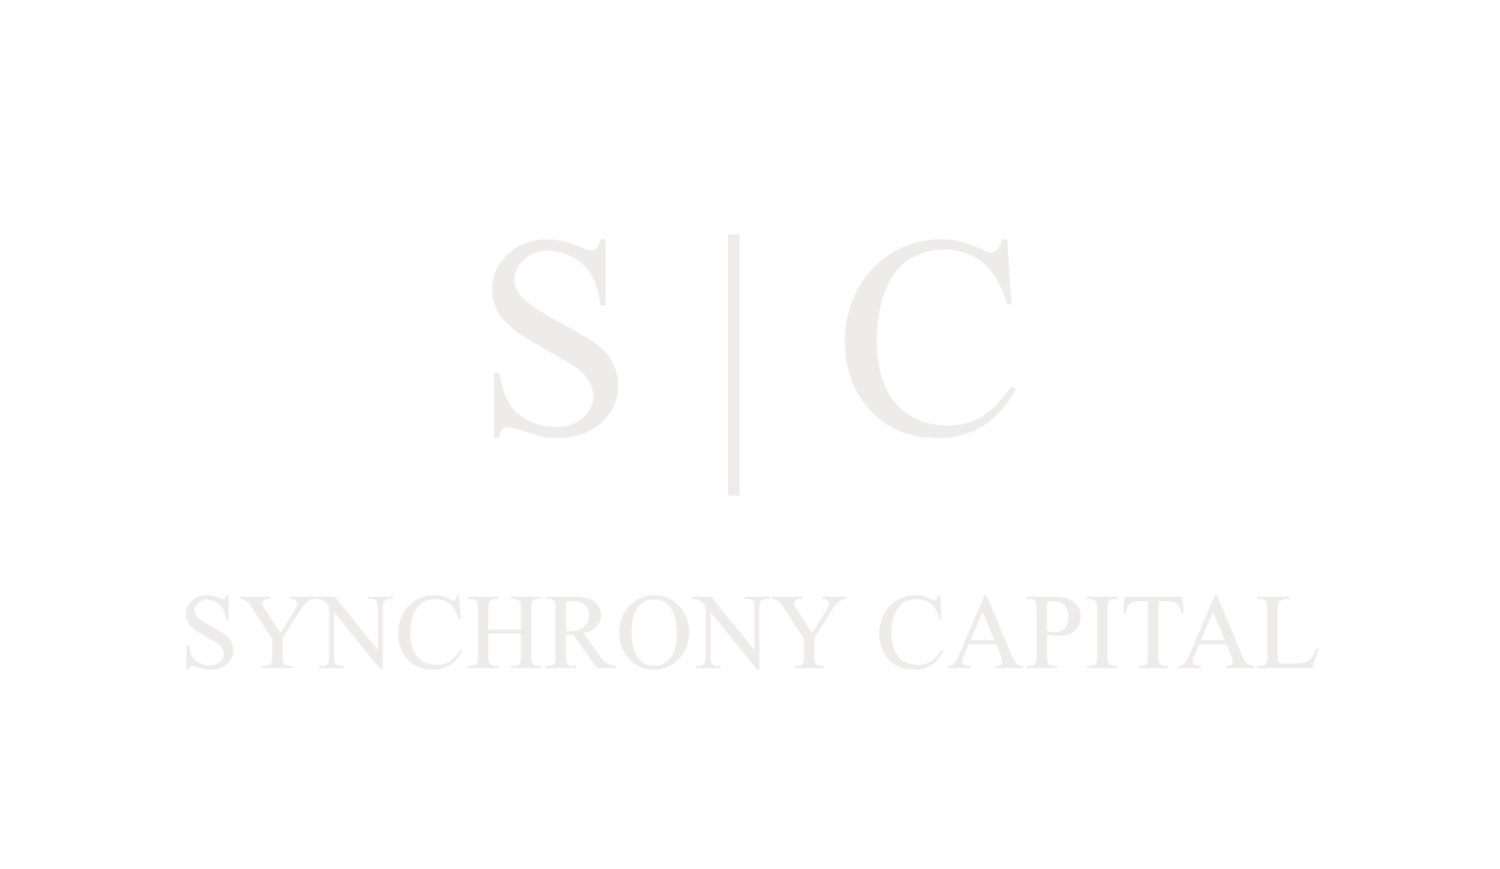 Synchrony Capital, LLC